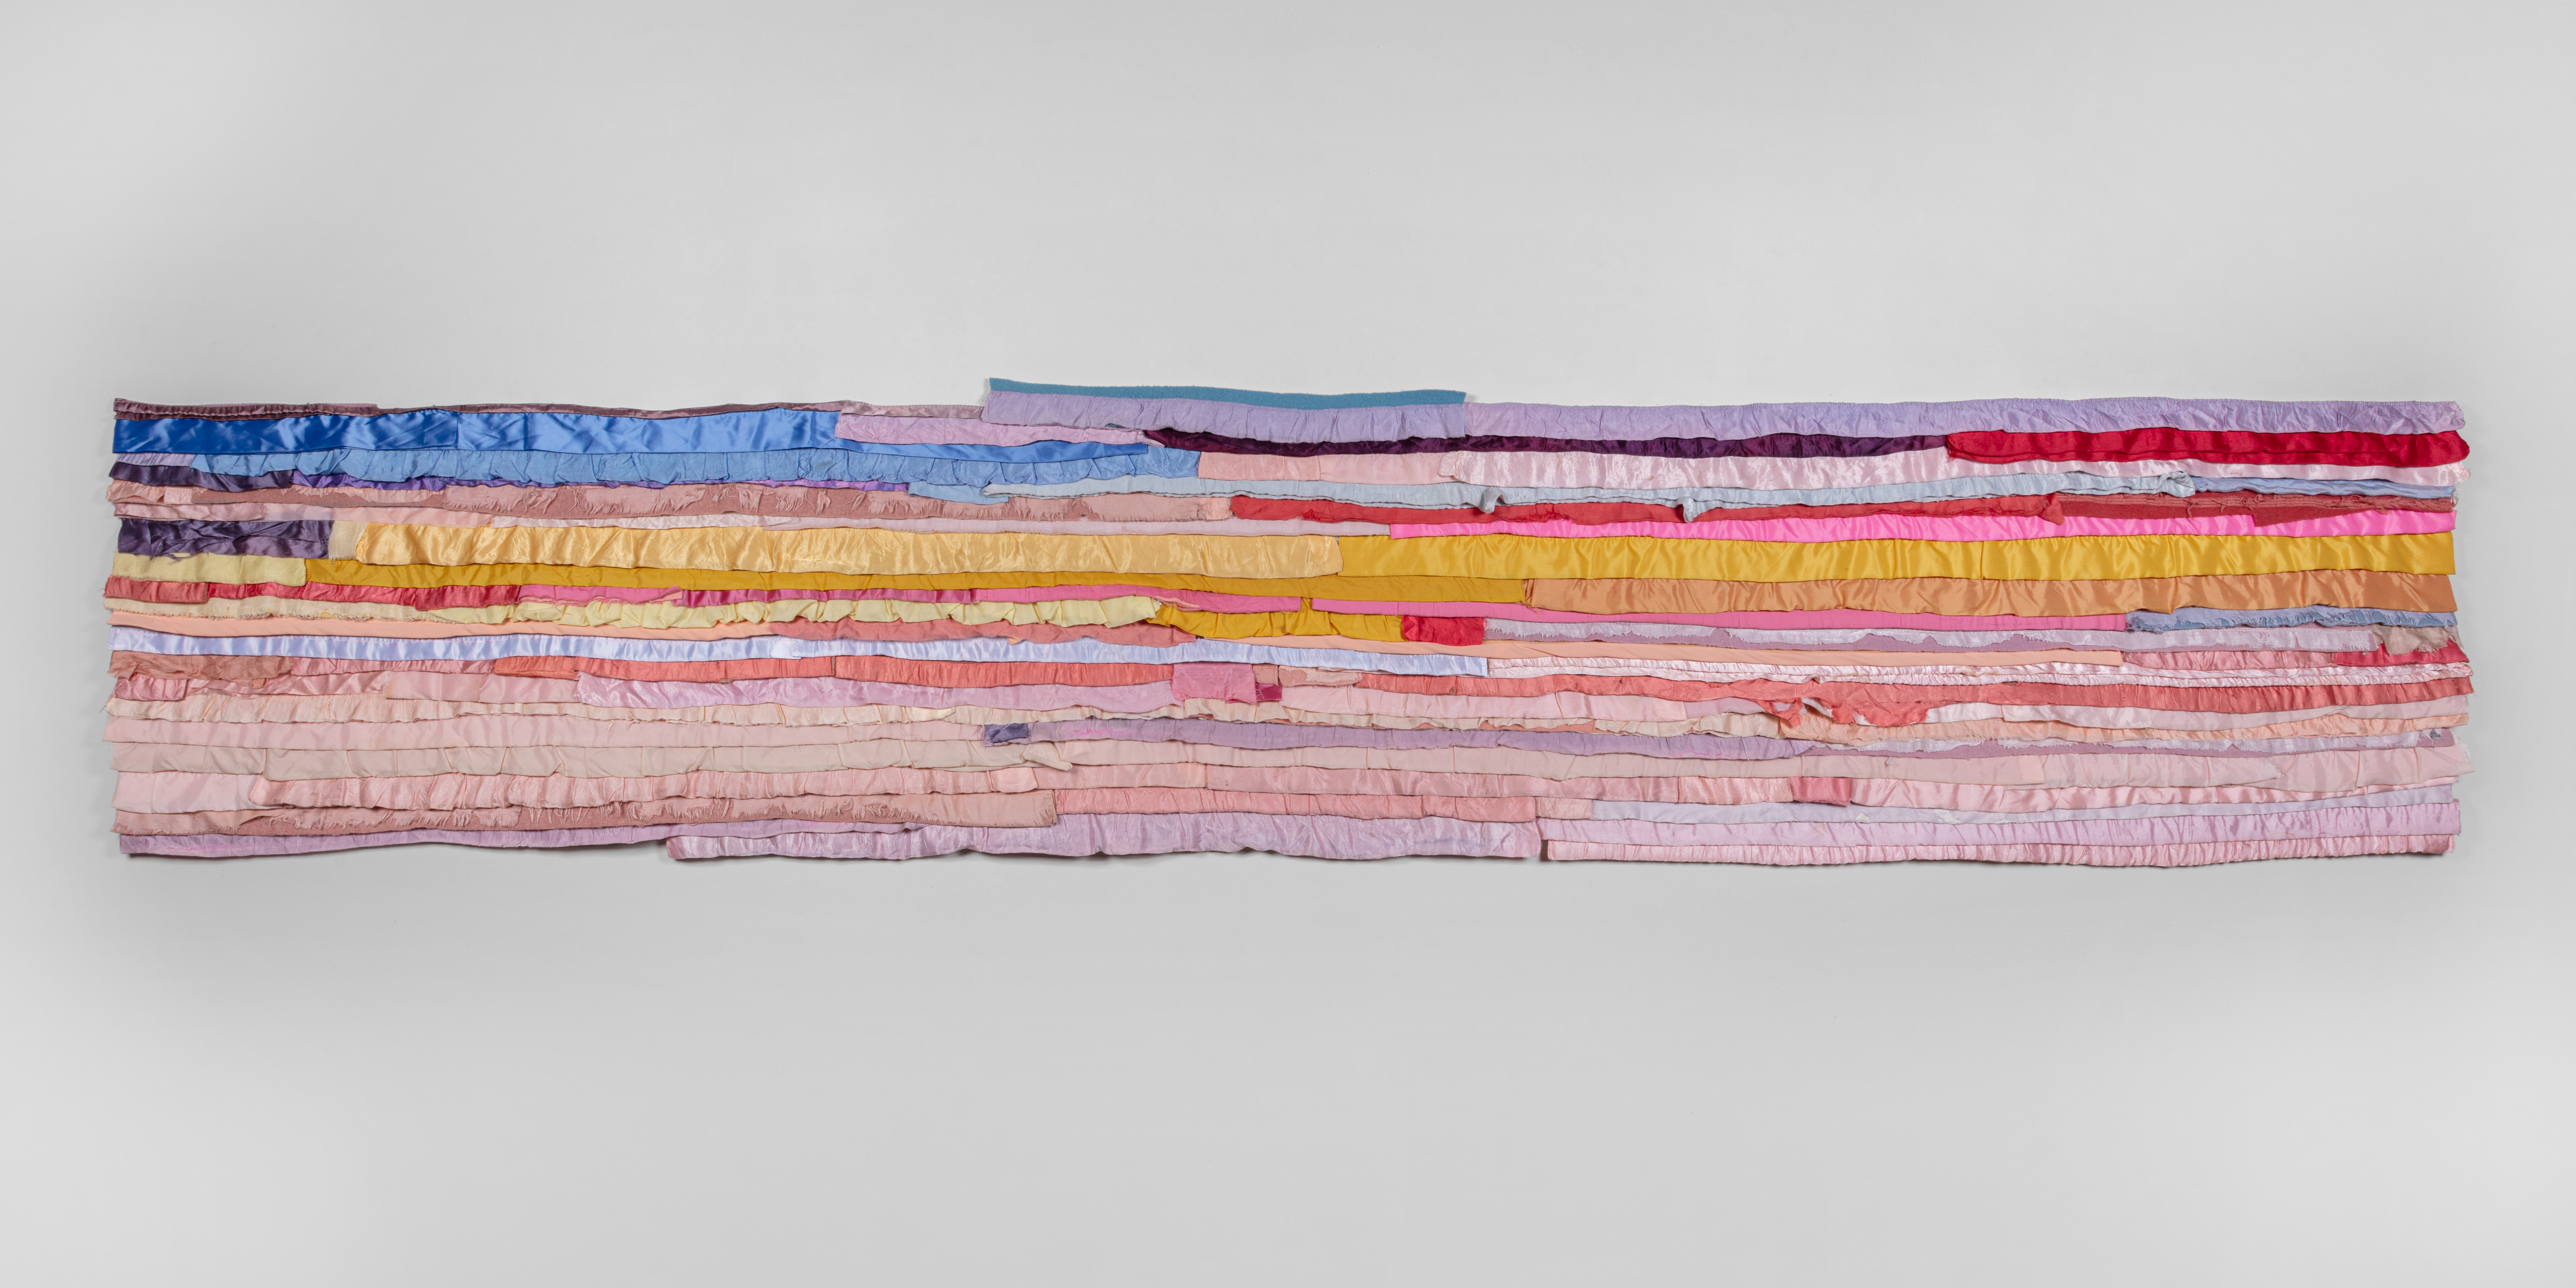 Marie Watt (b. 1967) Reclaimed satin bindings, industrial felt, thread  32.5 x 168 inches  (82.55 x 426.72 cm) Photography by Kevin McConnell - Marc Straus Gallery